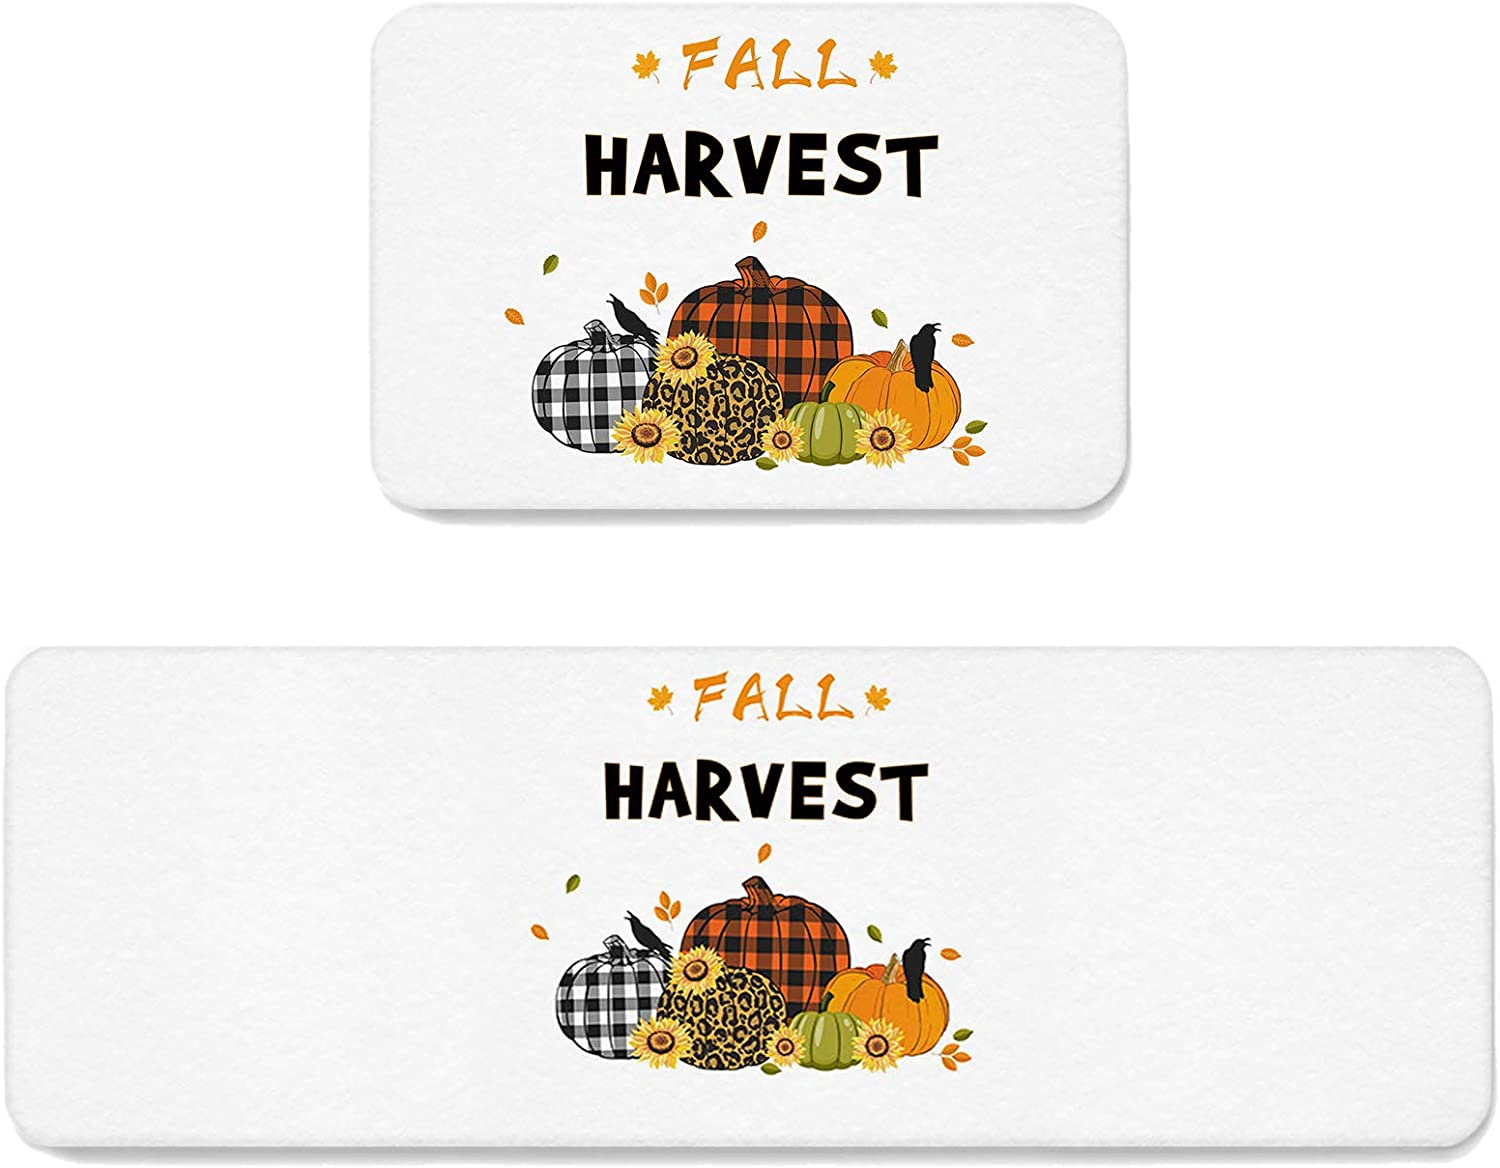 Kitchen Mat Set of 2 Rug Sale item Anti-Fatigue Fall Thanksgiving Direct store